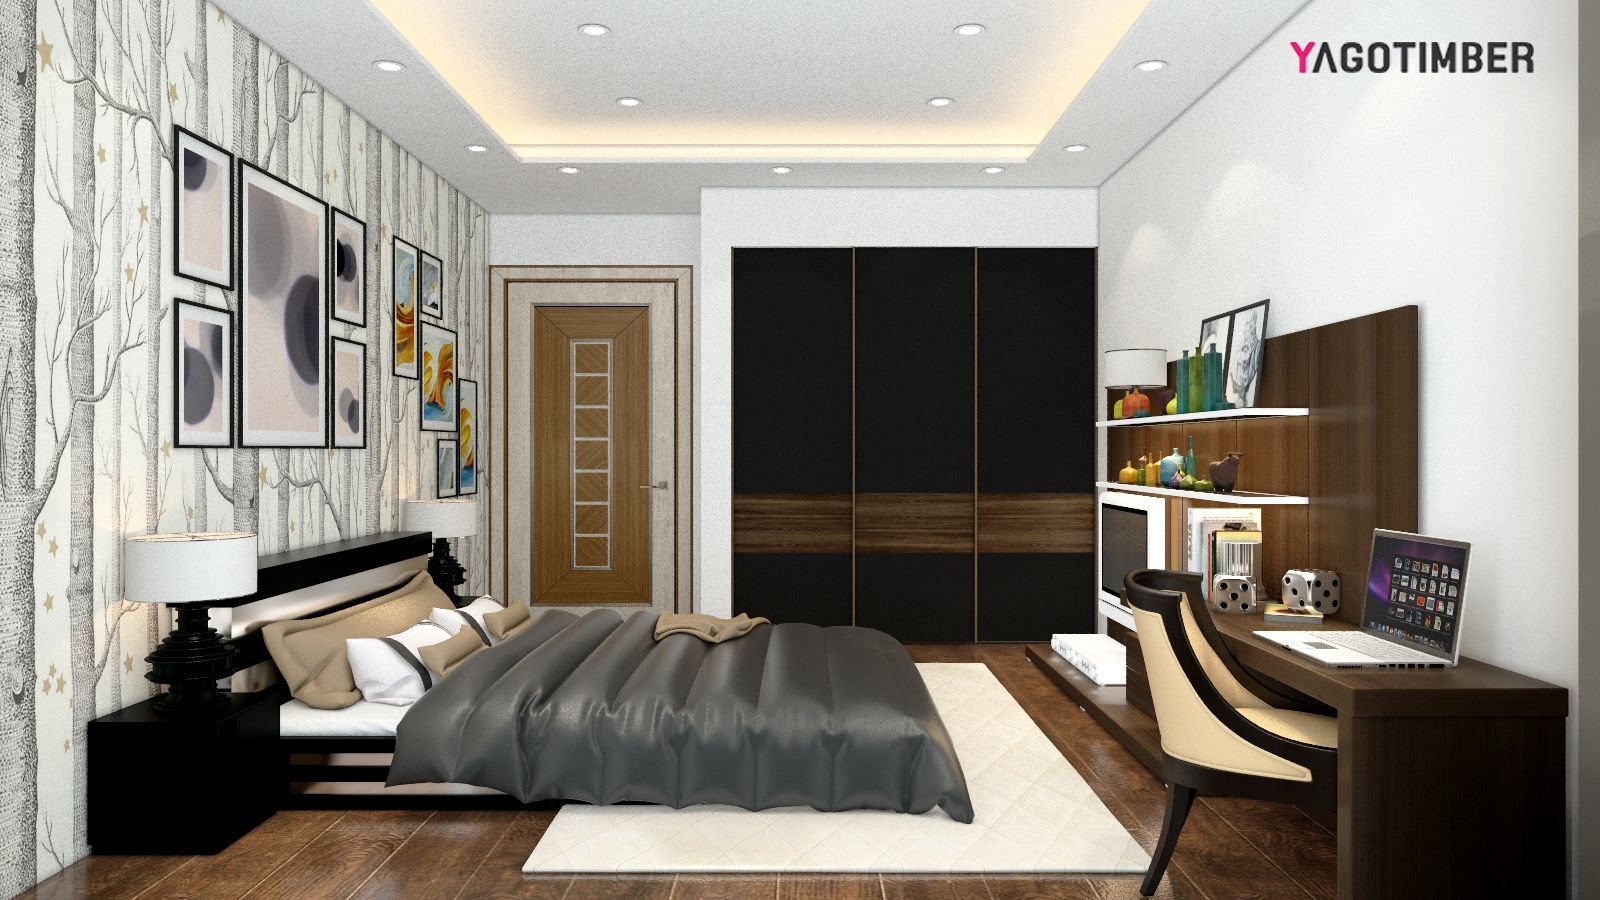 Designing Bedroom Get Yagotimber's Modern #bedroom Interior Designs For Your #home